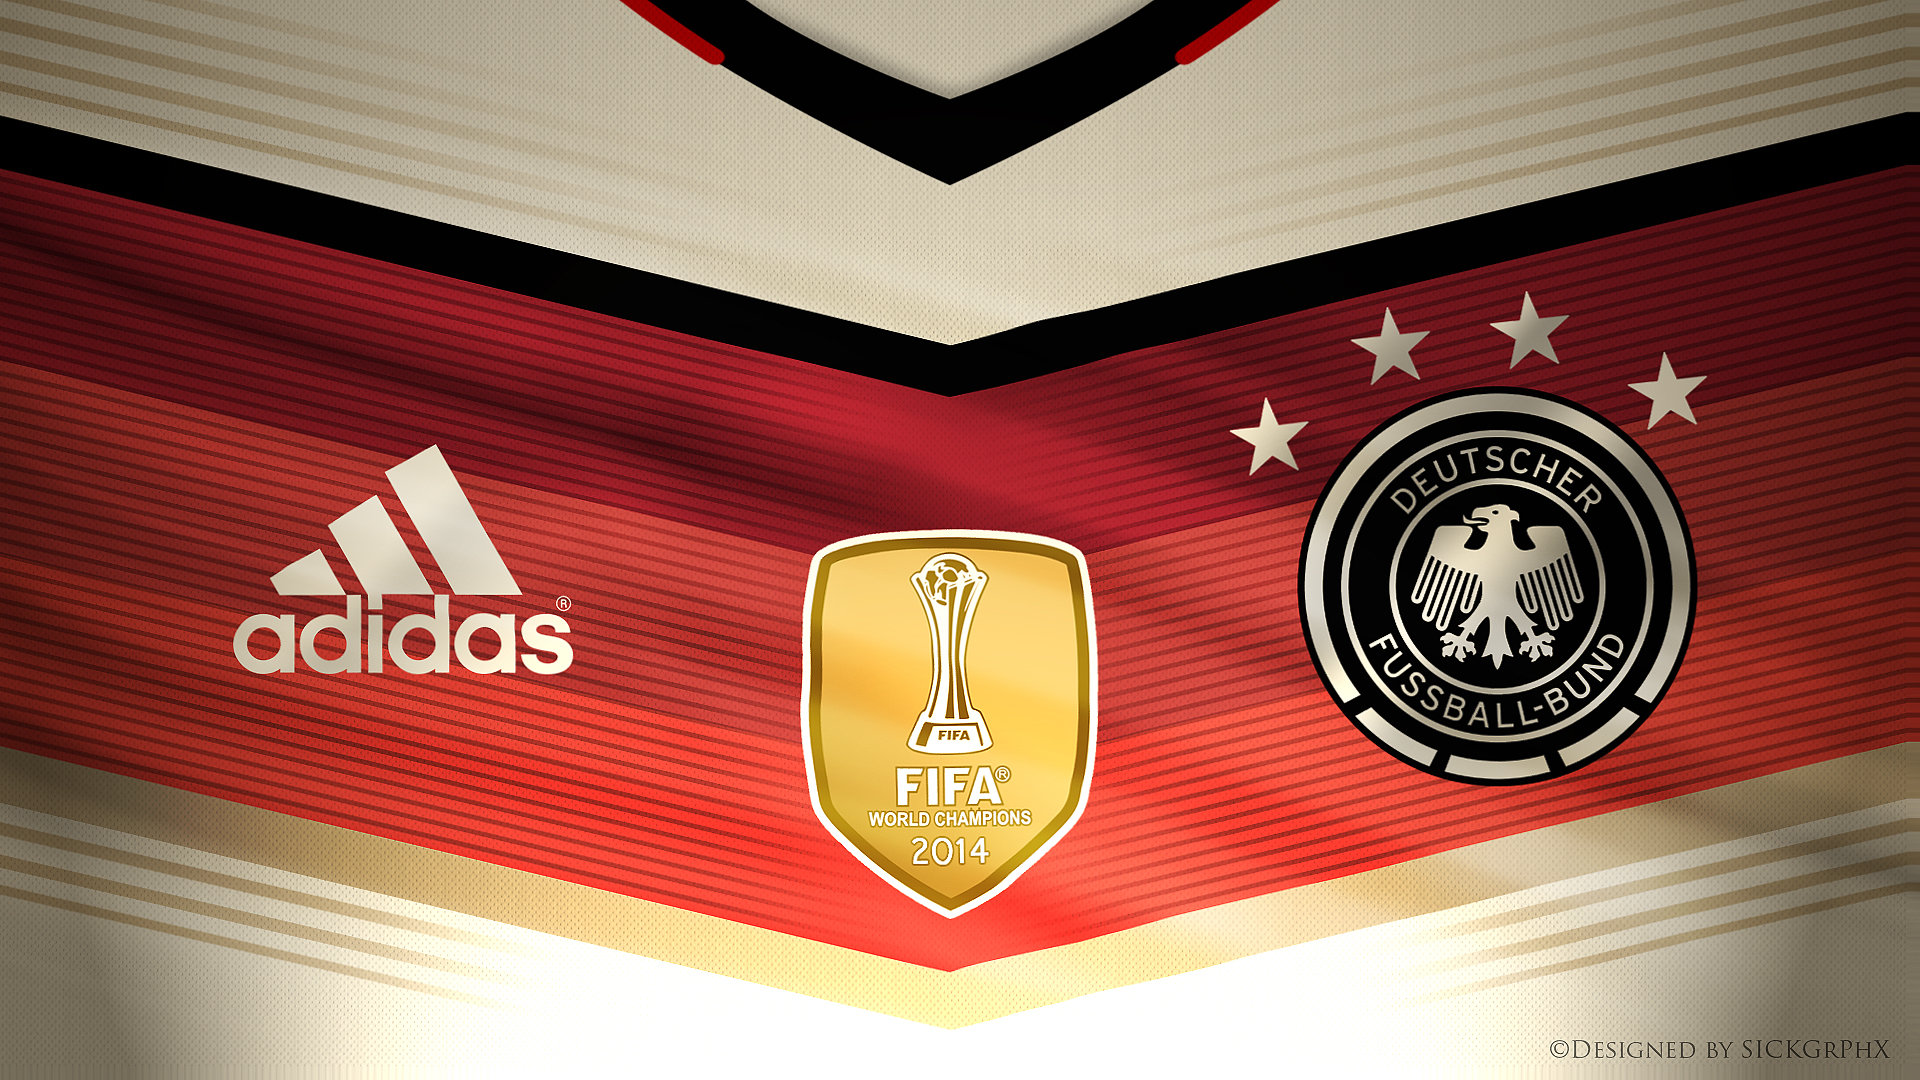 dfb world cup trikot 2014 germany four star by sickgrphx. Black Bedroom Furniture Sets. Home Design Ideas